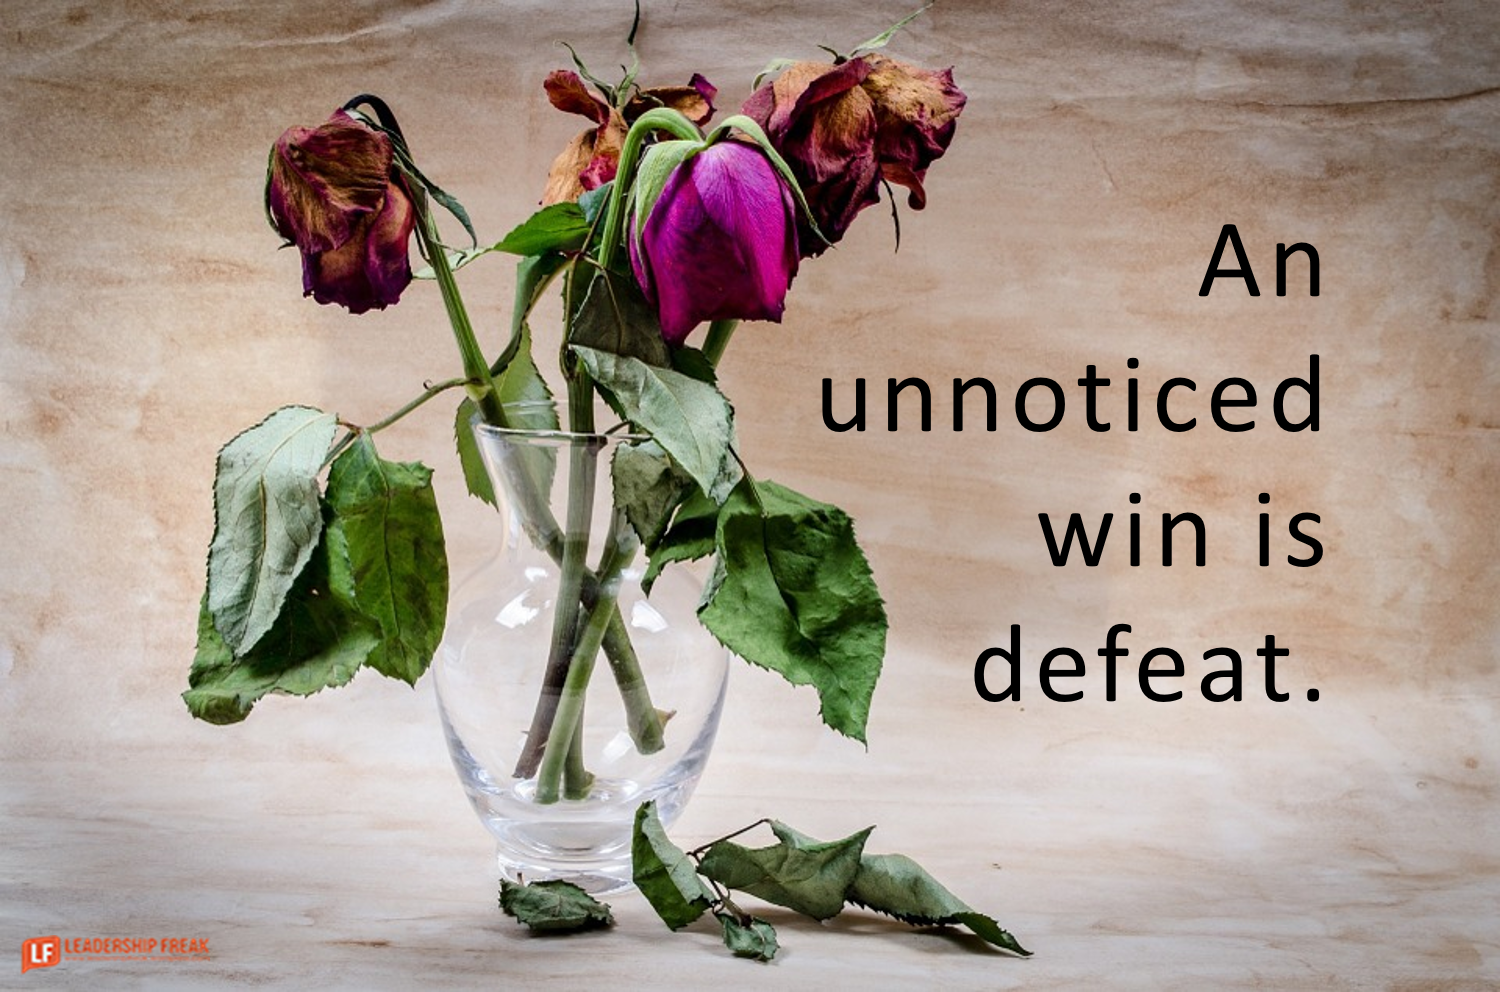 Wilted flowers. Withered.  An unnoticed win is defeat.